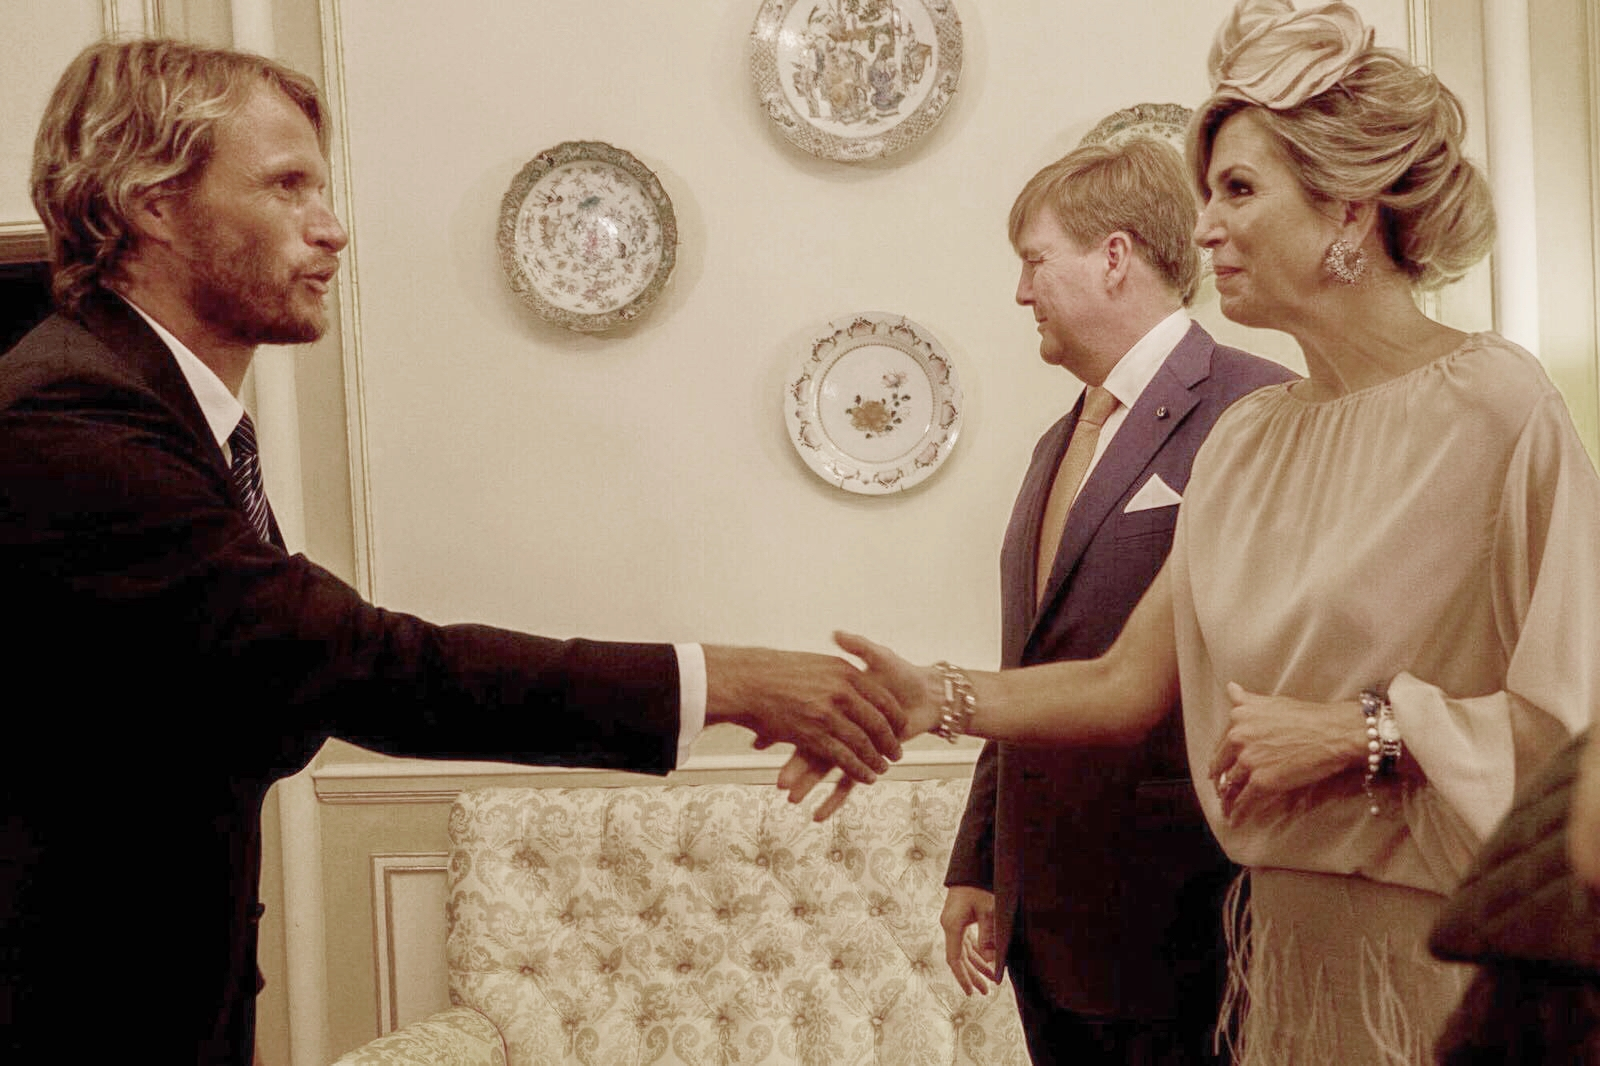 Anton Beill received a personal invitation to meet up with the Dutch Royal family our Queen Máxima and our King Willem Alexander.